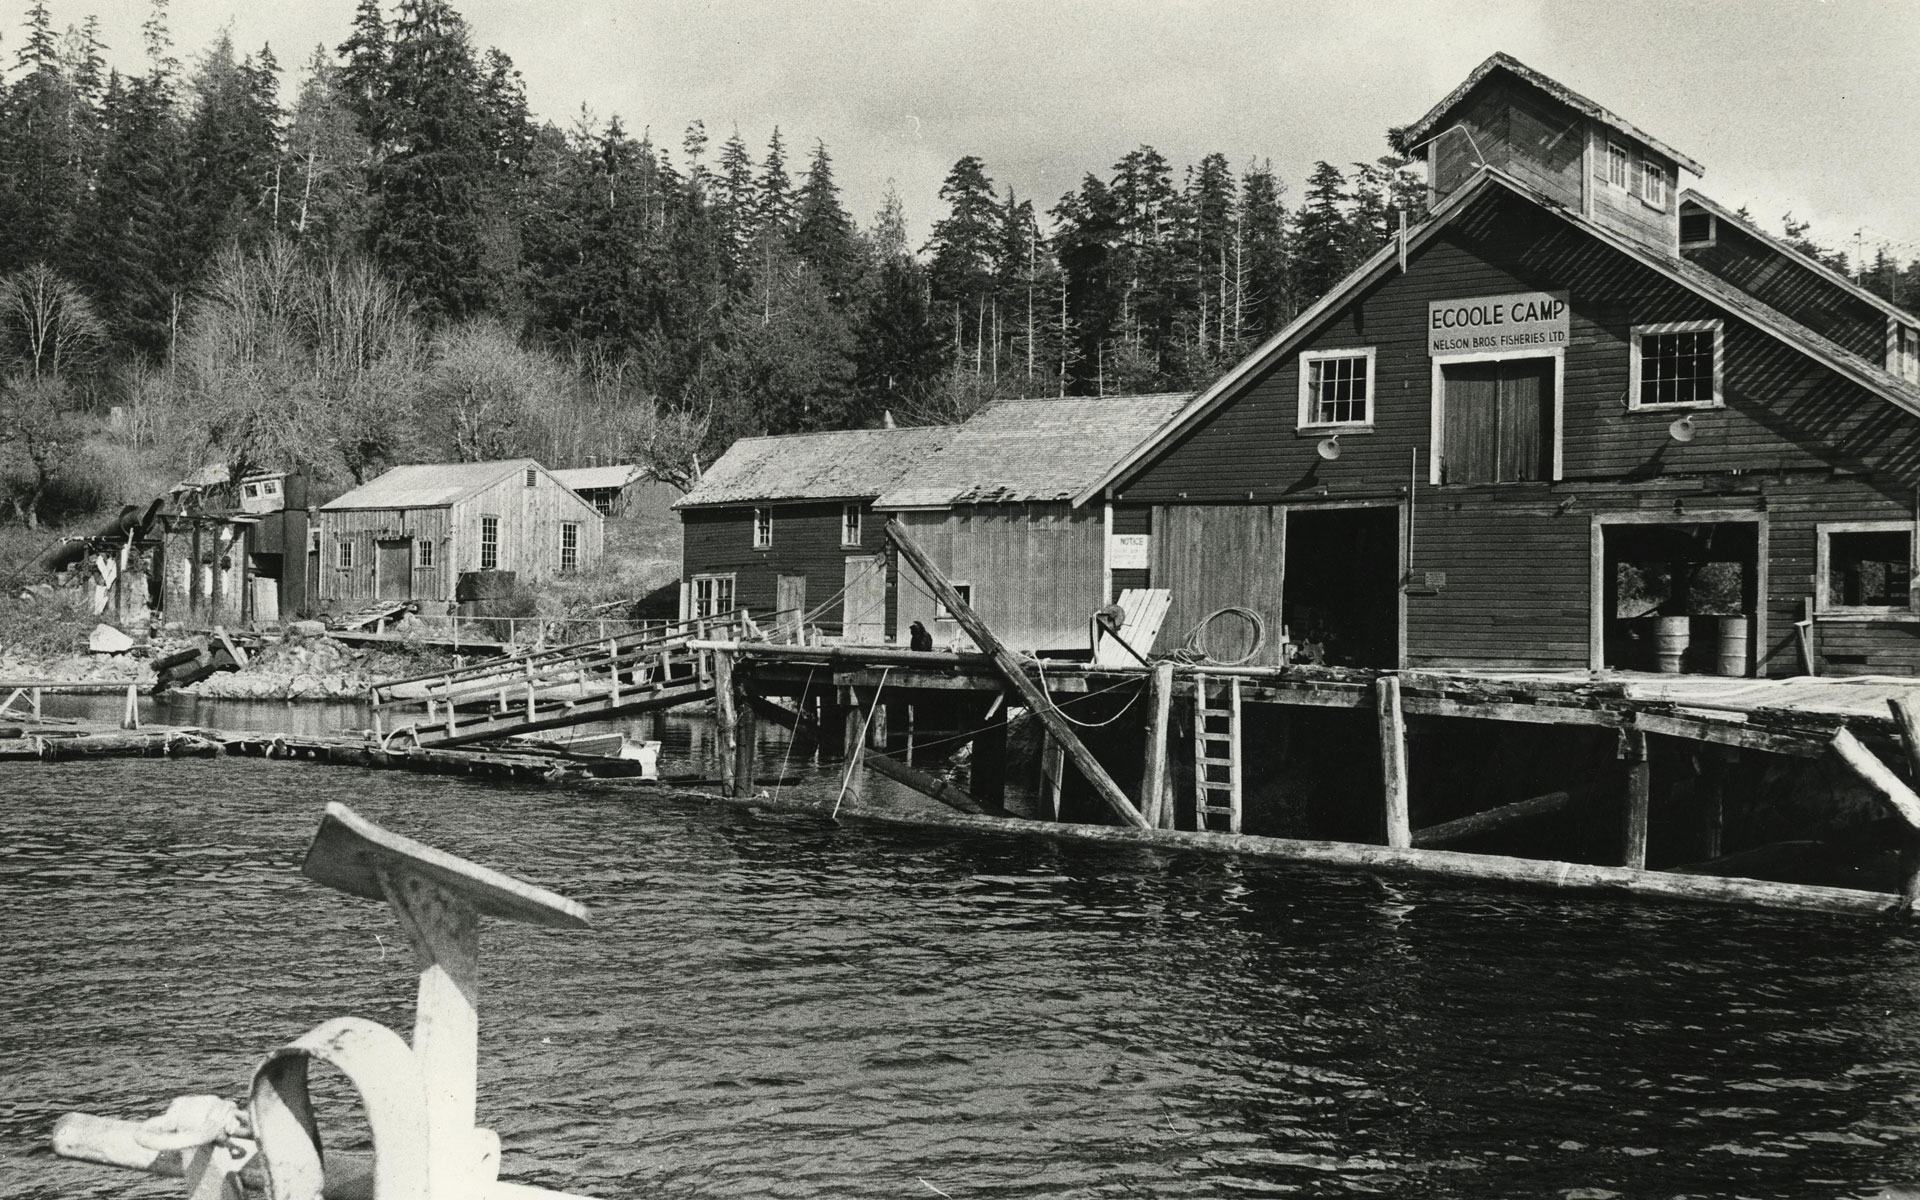 Wooden buildings on pilings with water in the foreground.